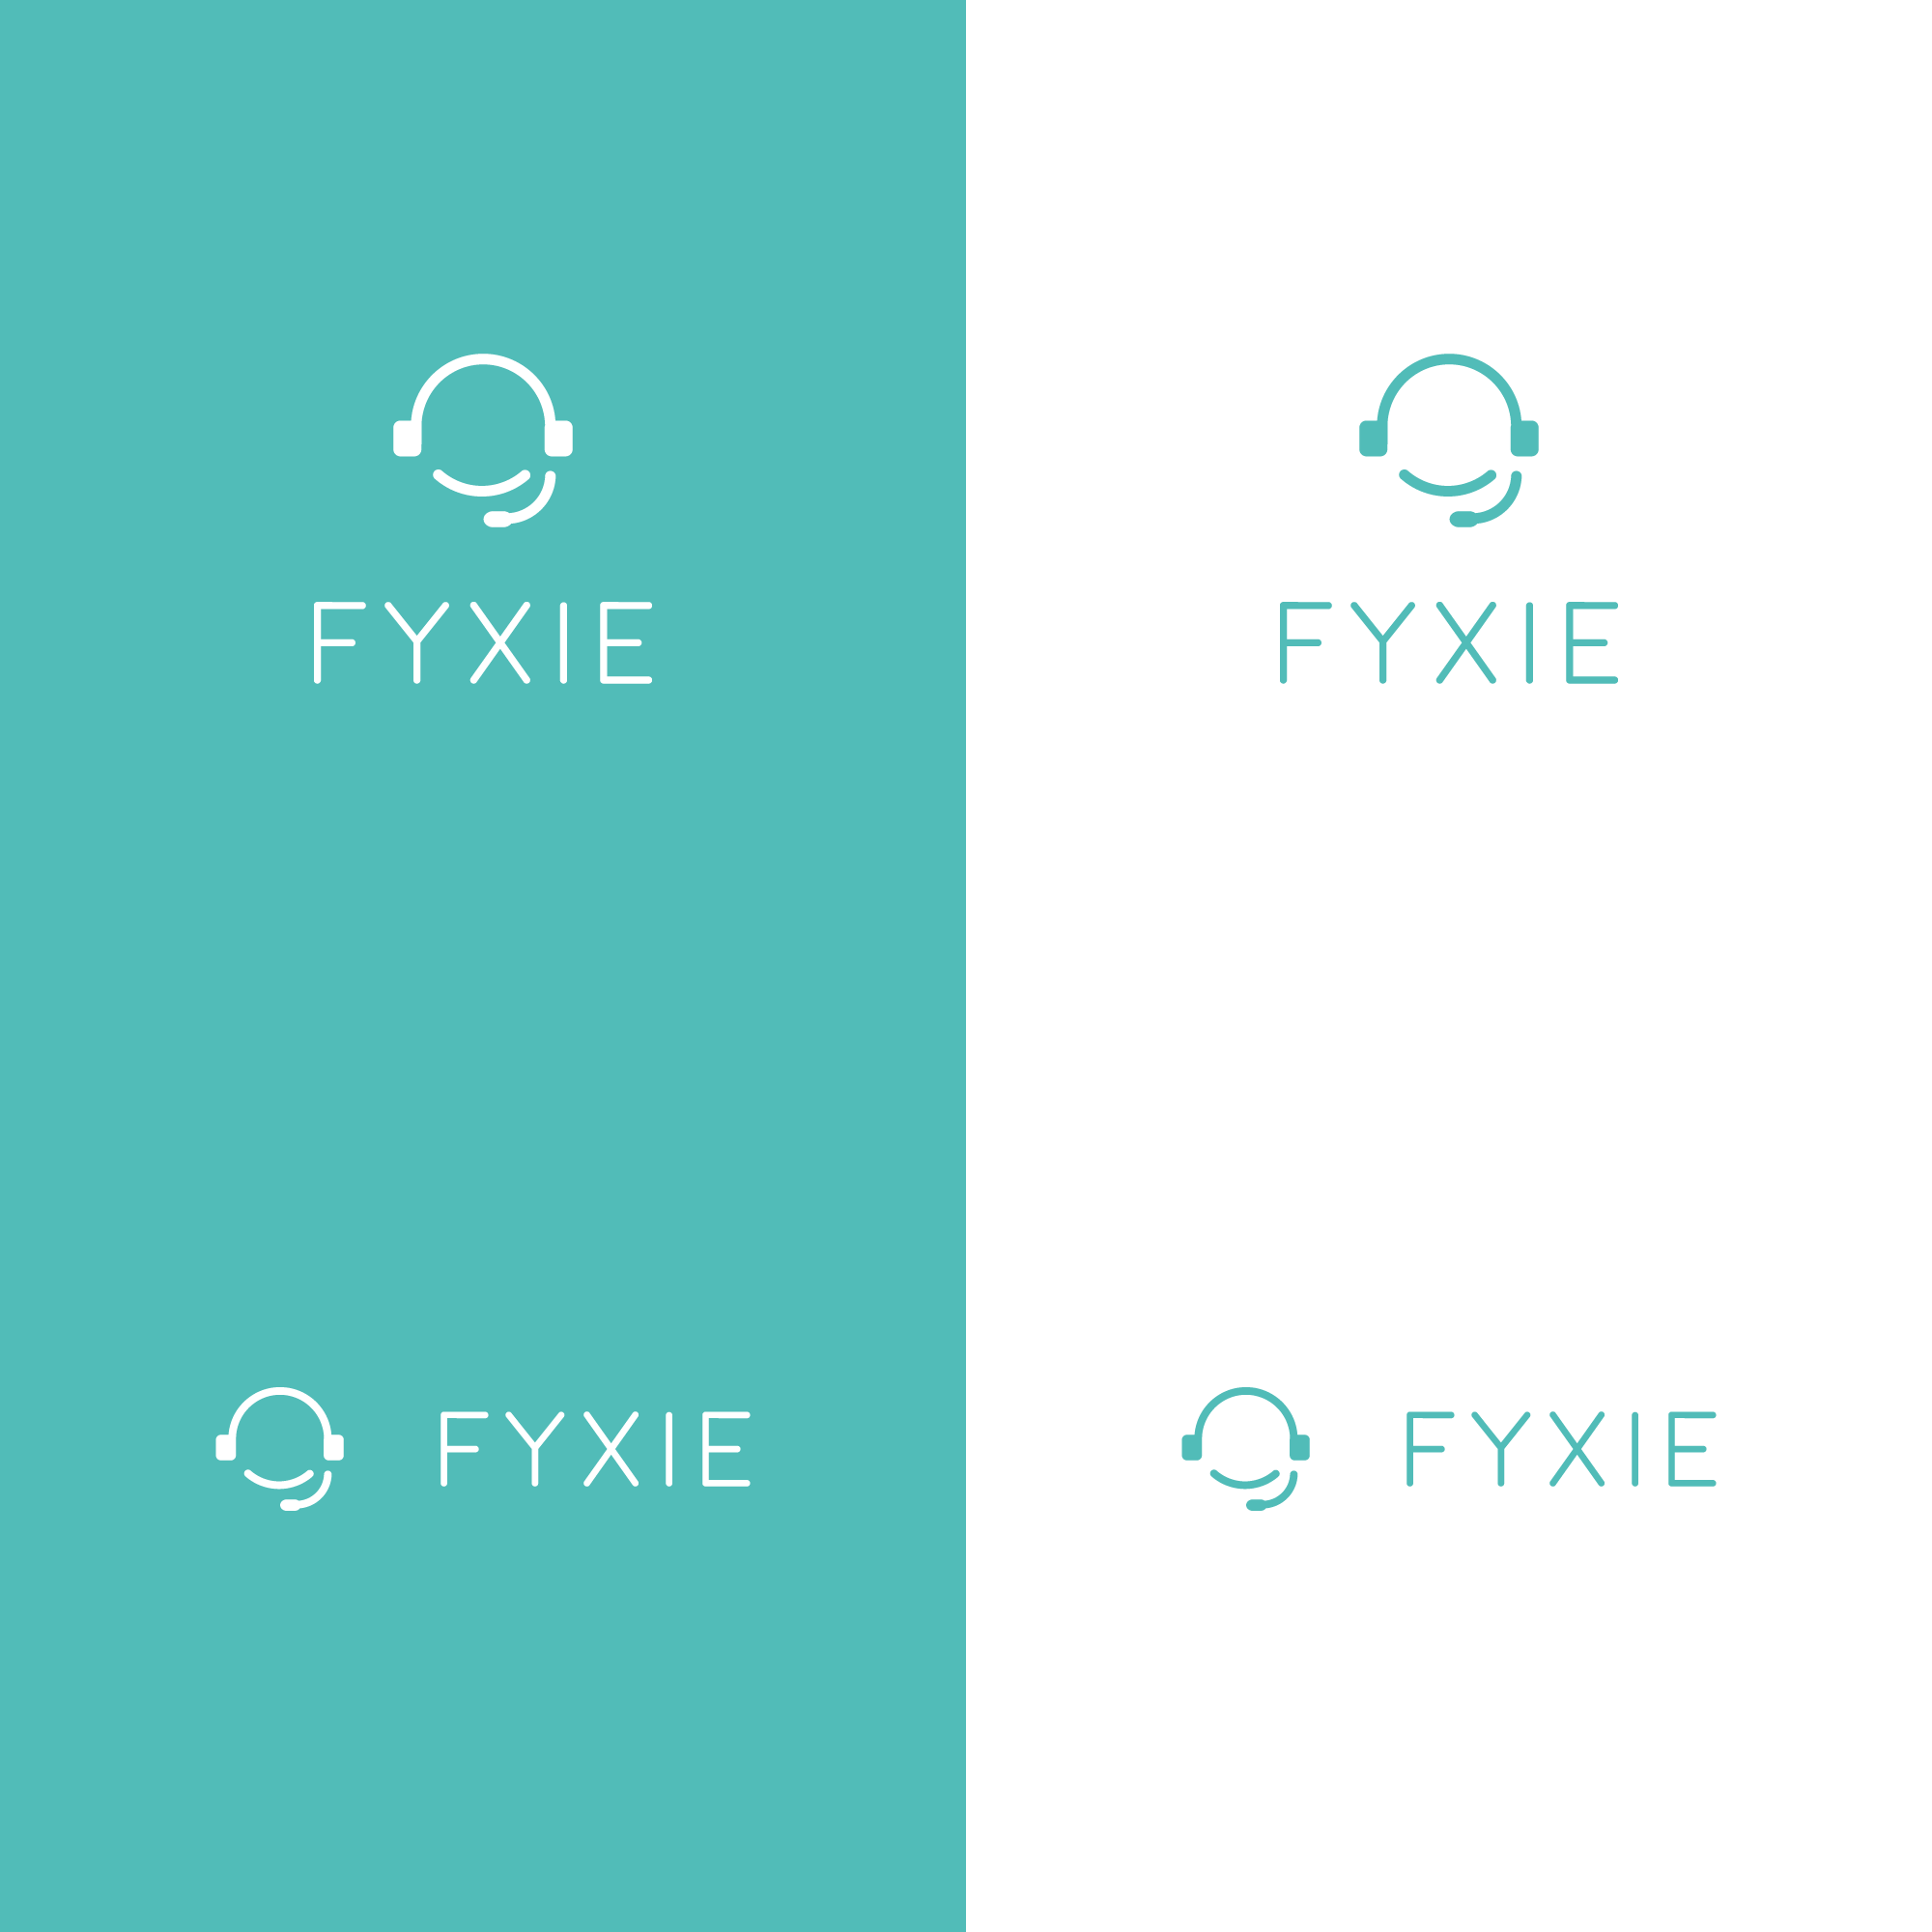 New logo for a technical support company named Fyxie. Simple and clean.